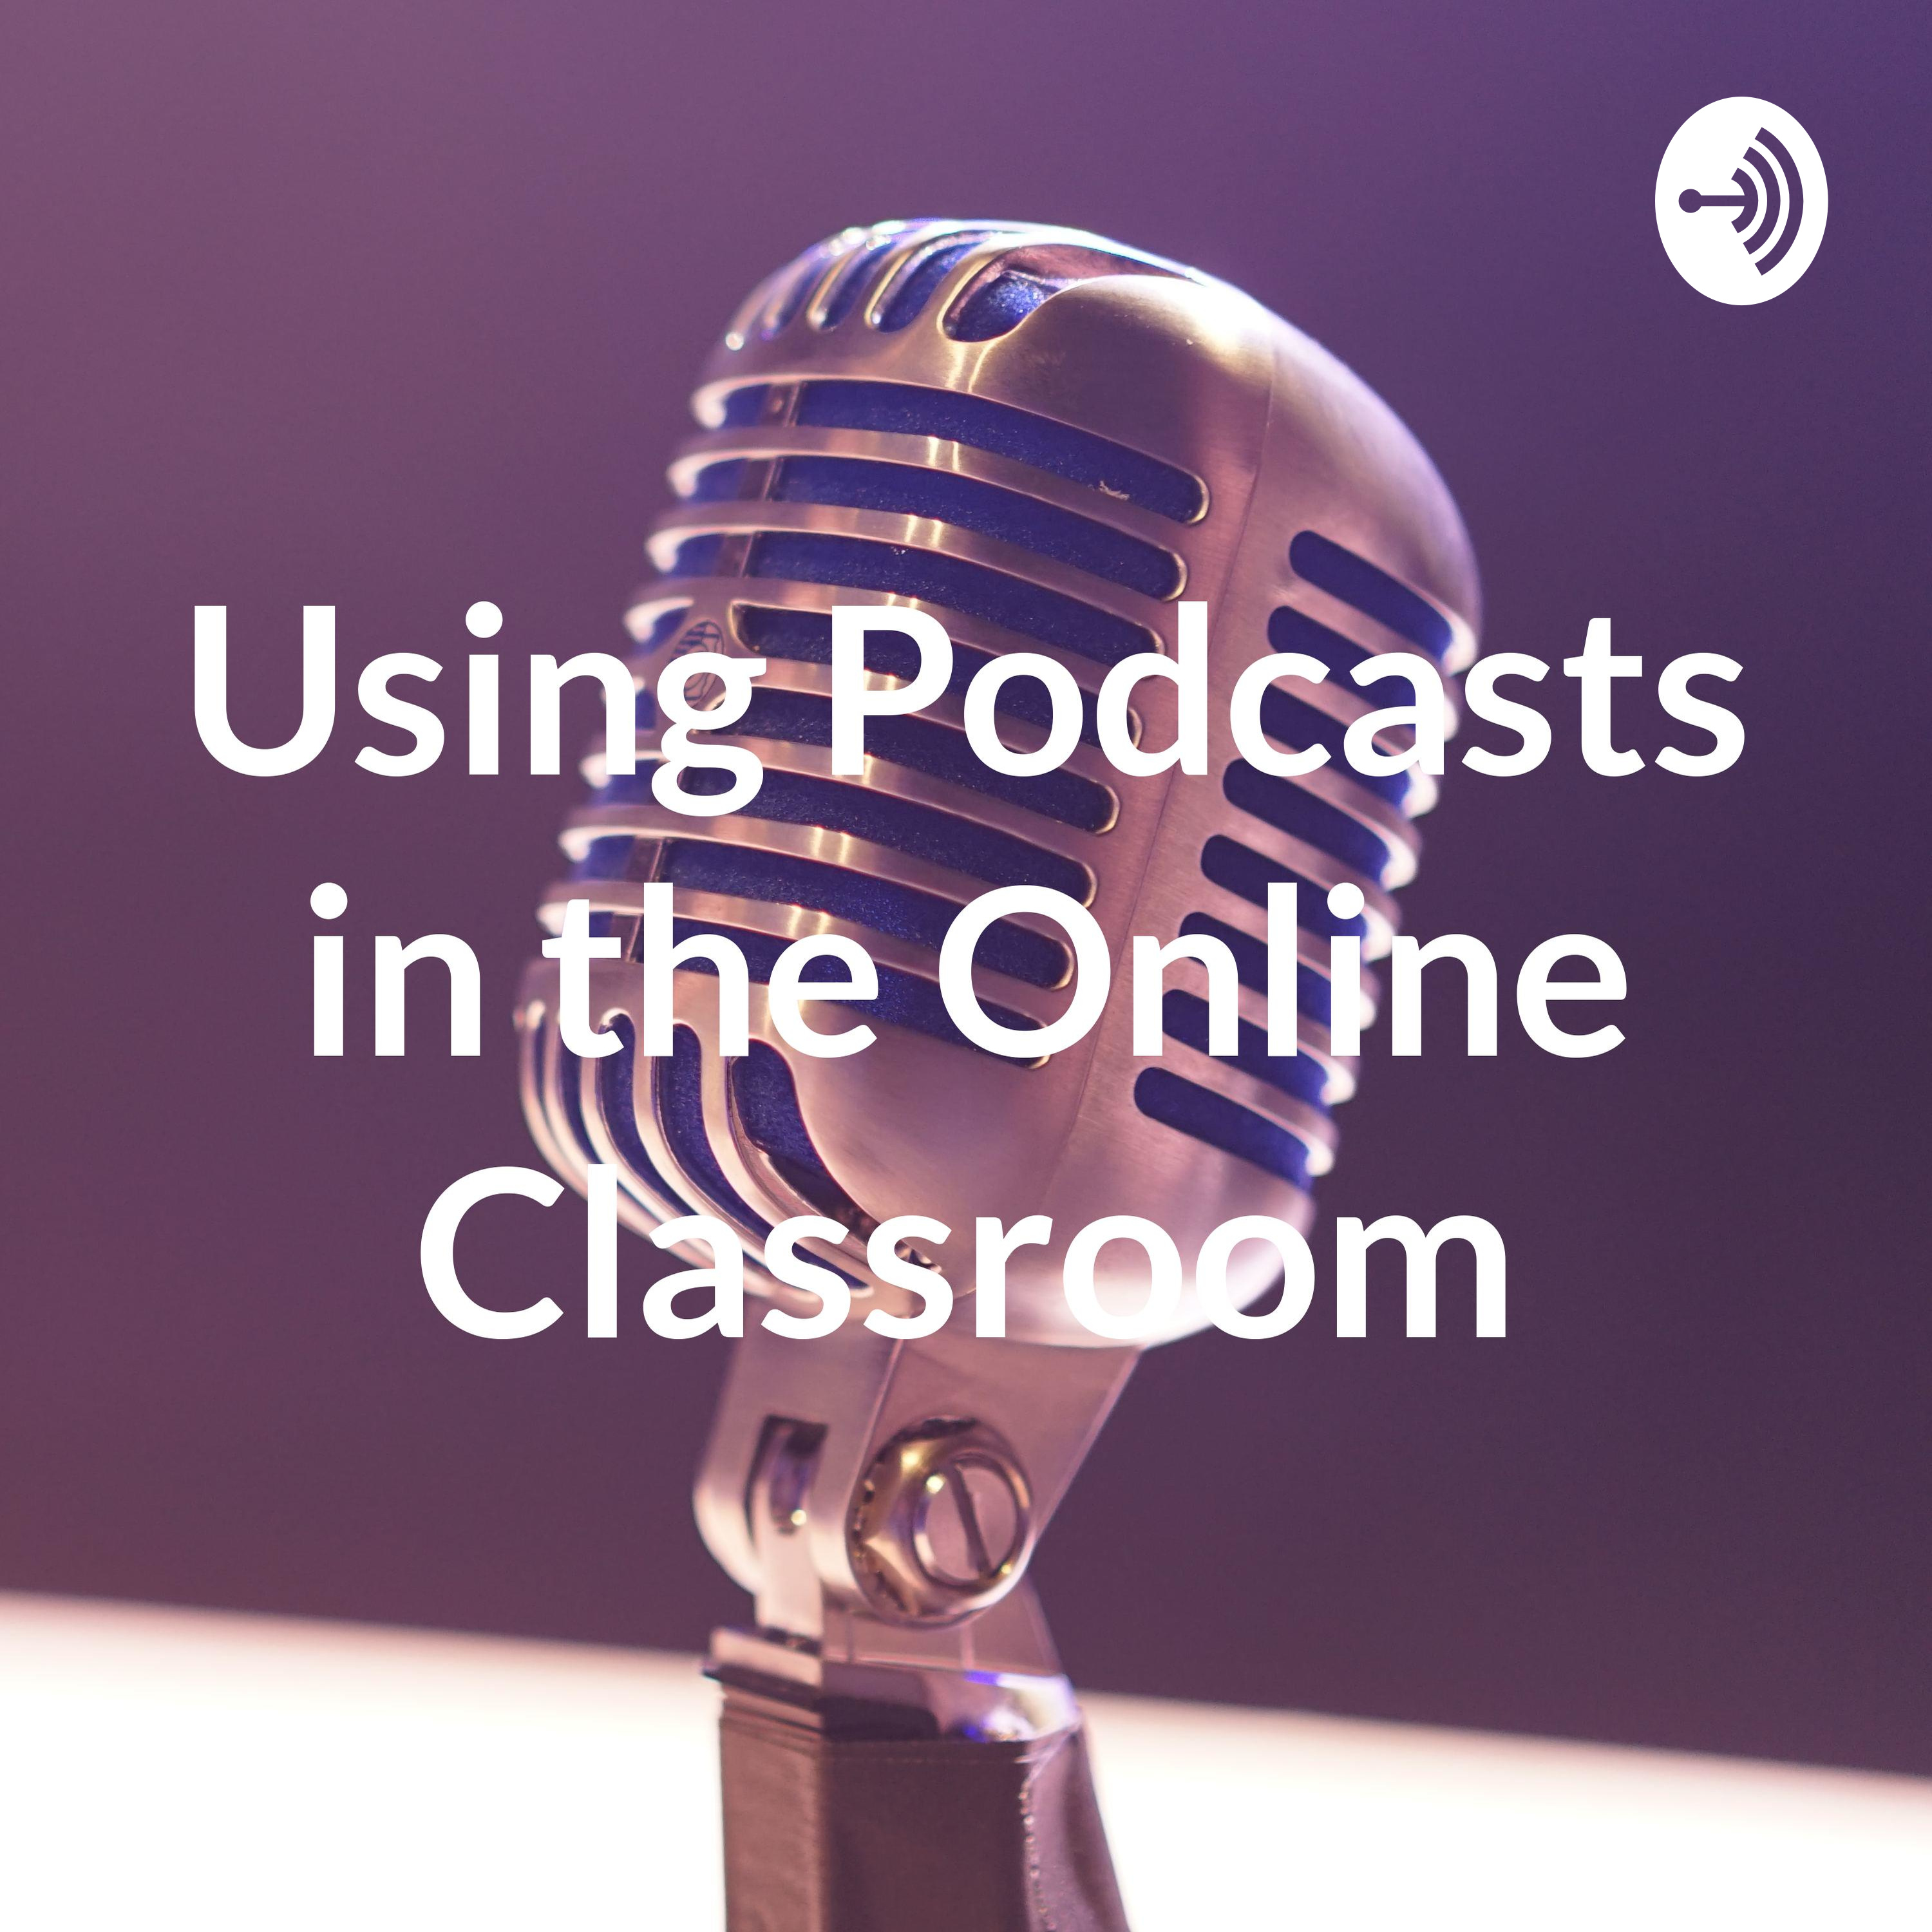 Podcasting in the Online Classroom